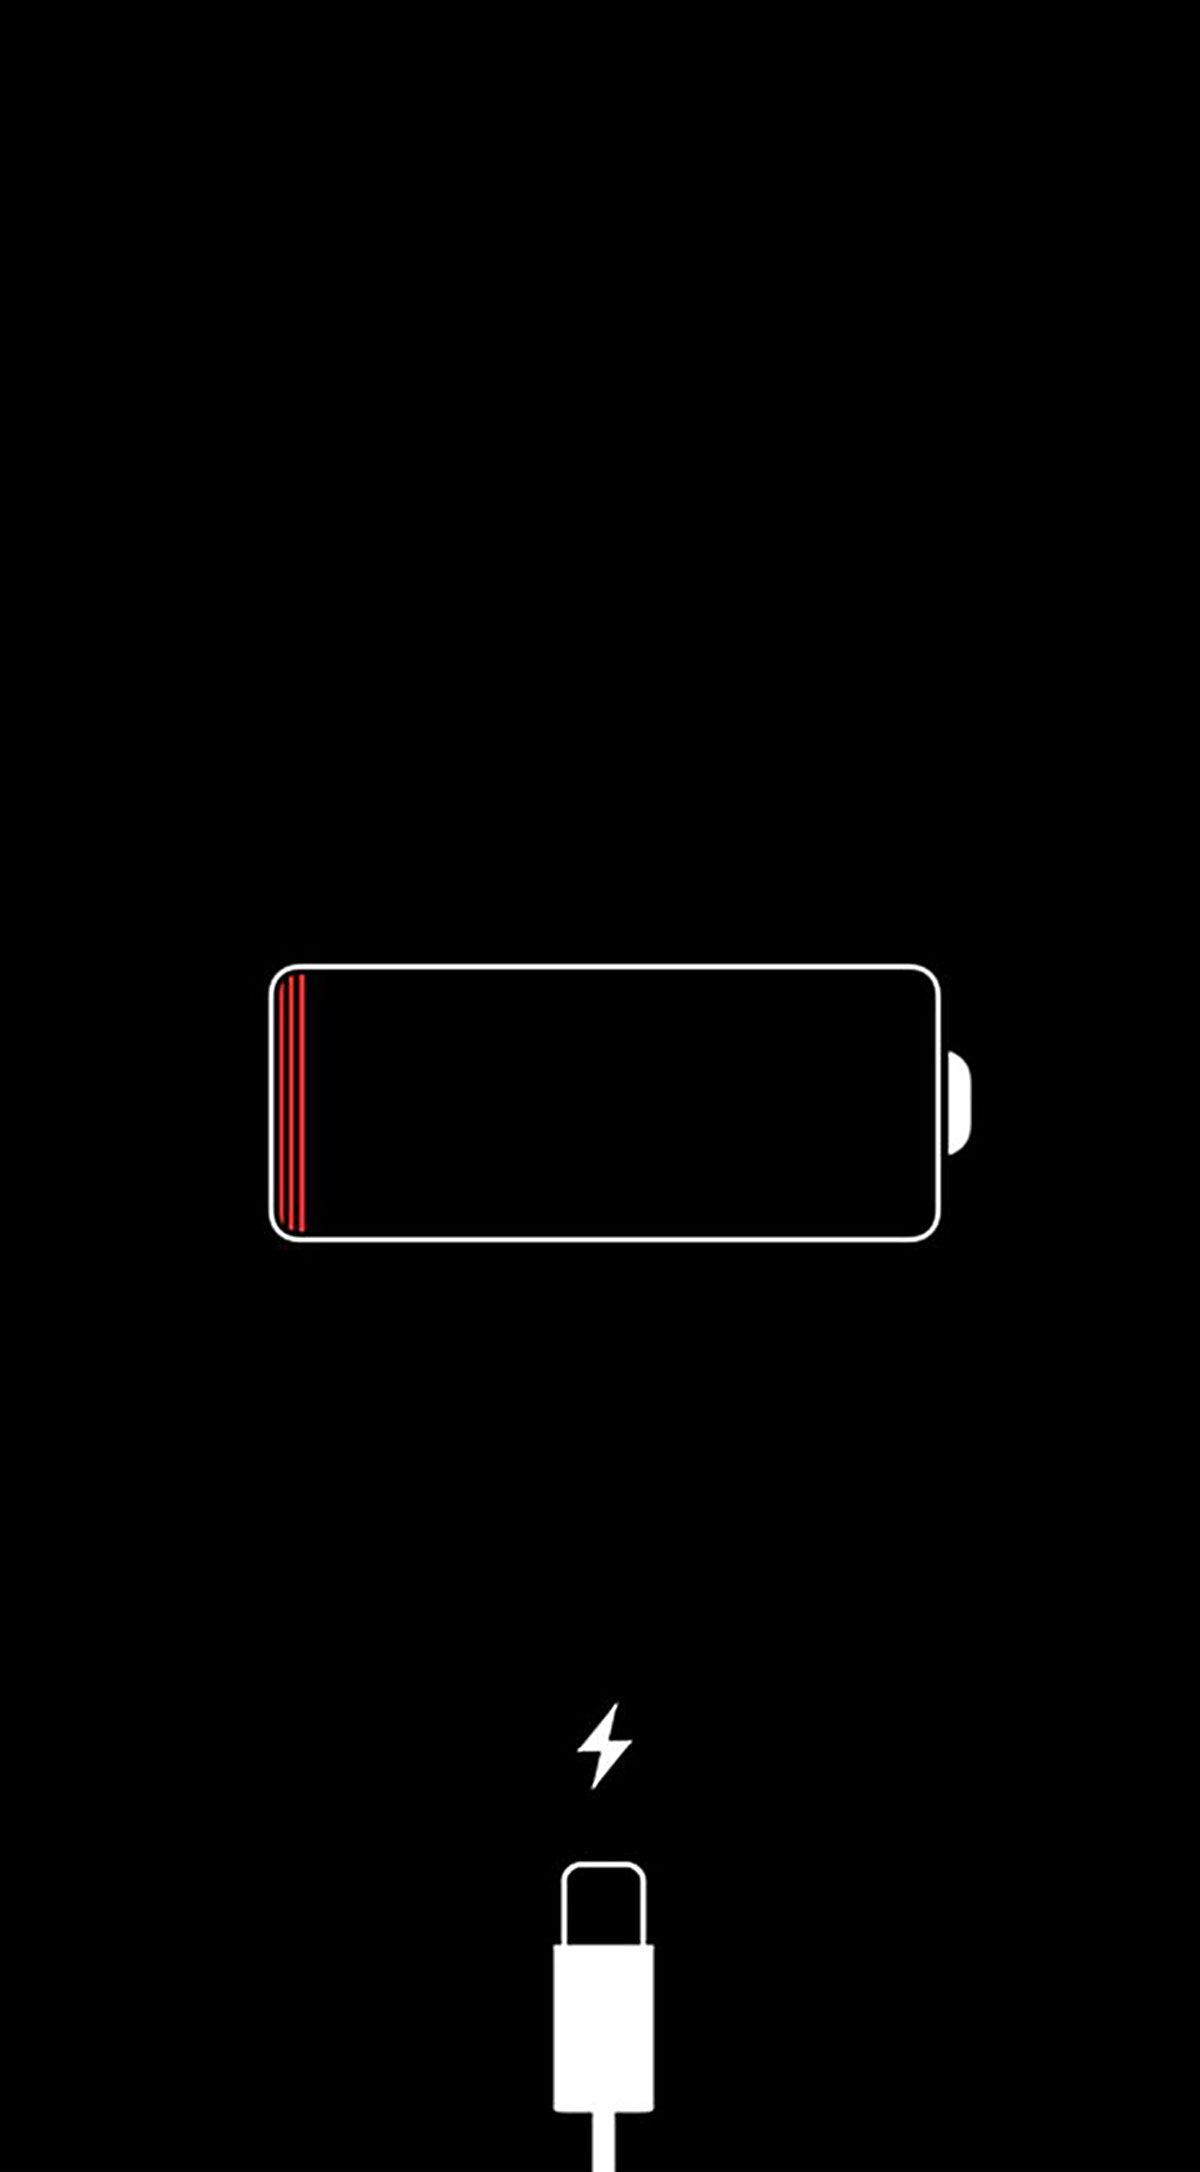 How To Make Your Low Phone Battery Last Longer The Real Truth Behind Household Power Savers Eep